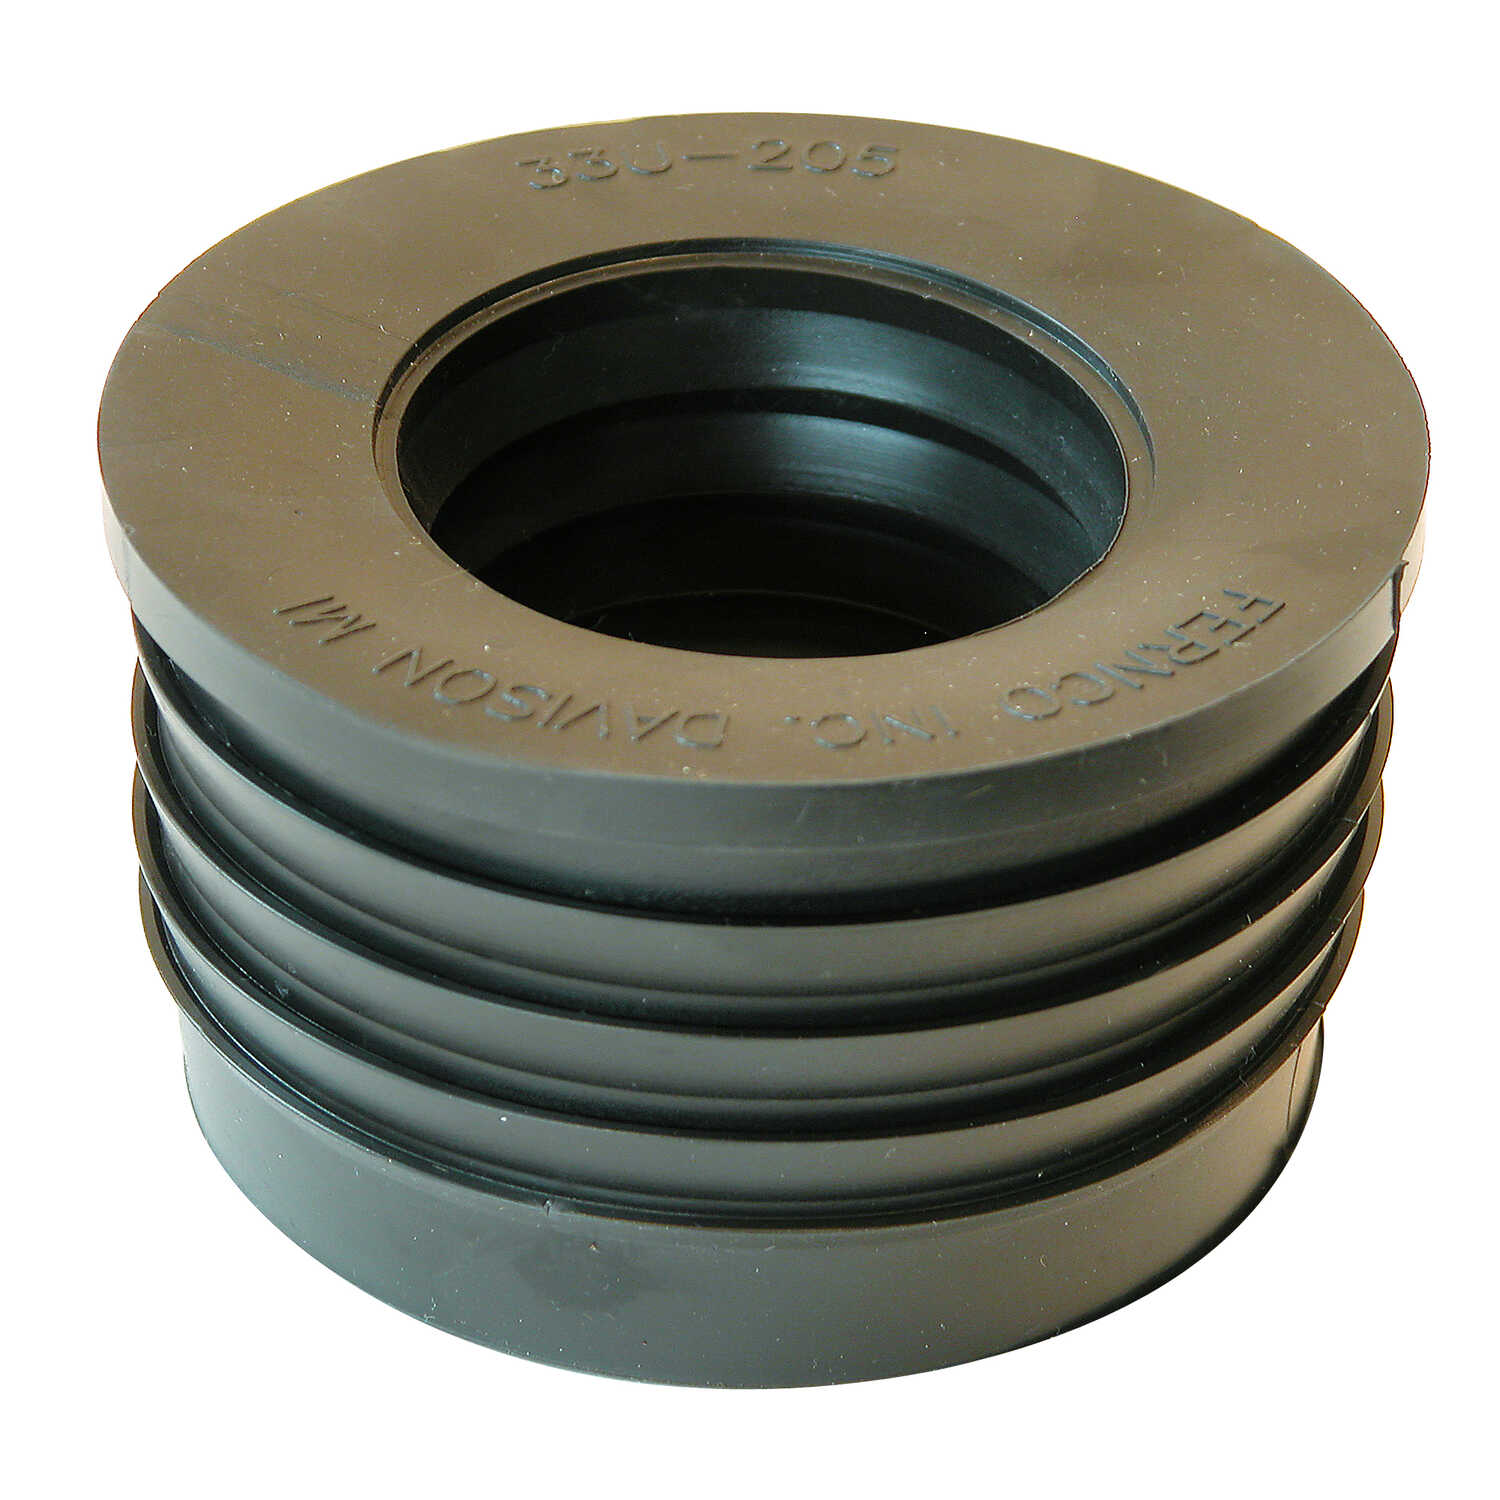 Fernco  Schedule 40  3 in. Hub   x 2 in. Dia. Hub  PVC  Donut Fitting